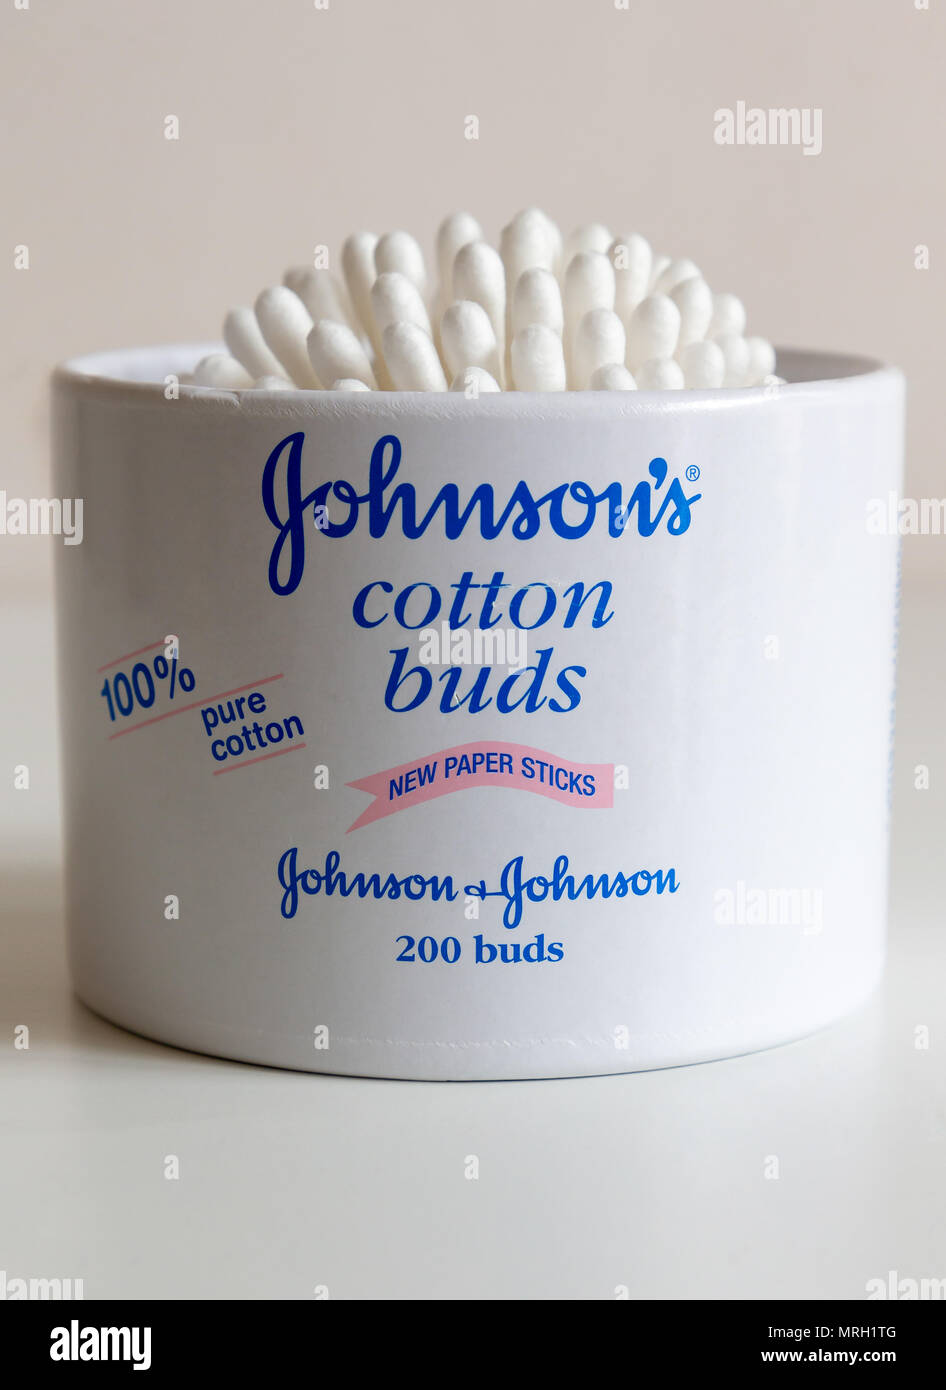 Johnson's Cotton Buds now have paper sticks instead of using plastic Stock Photo